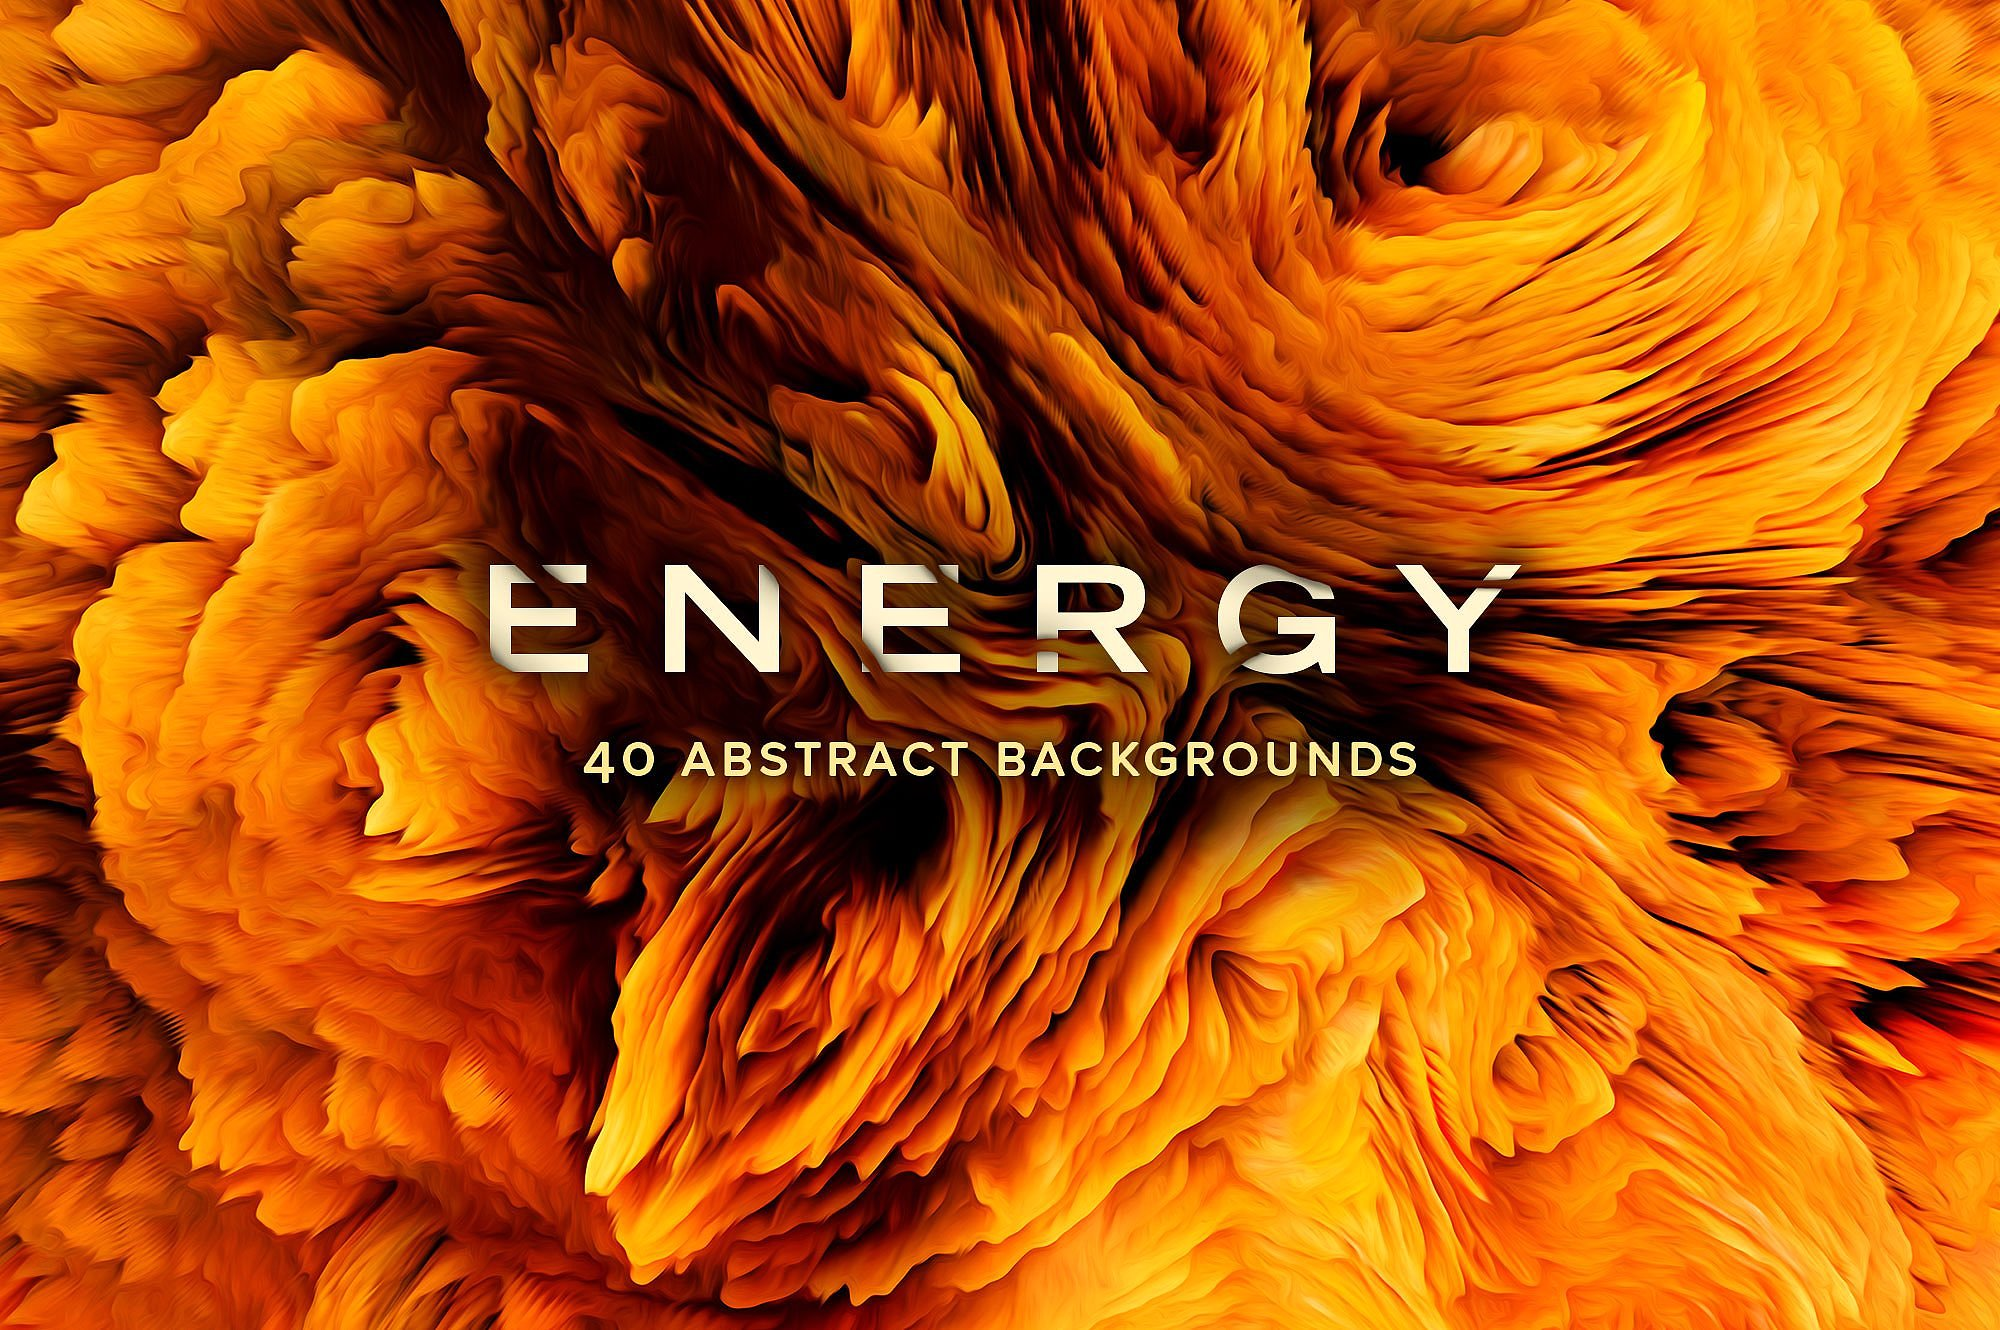 Energy: 40 Abstract Backgrounds stock photo collection